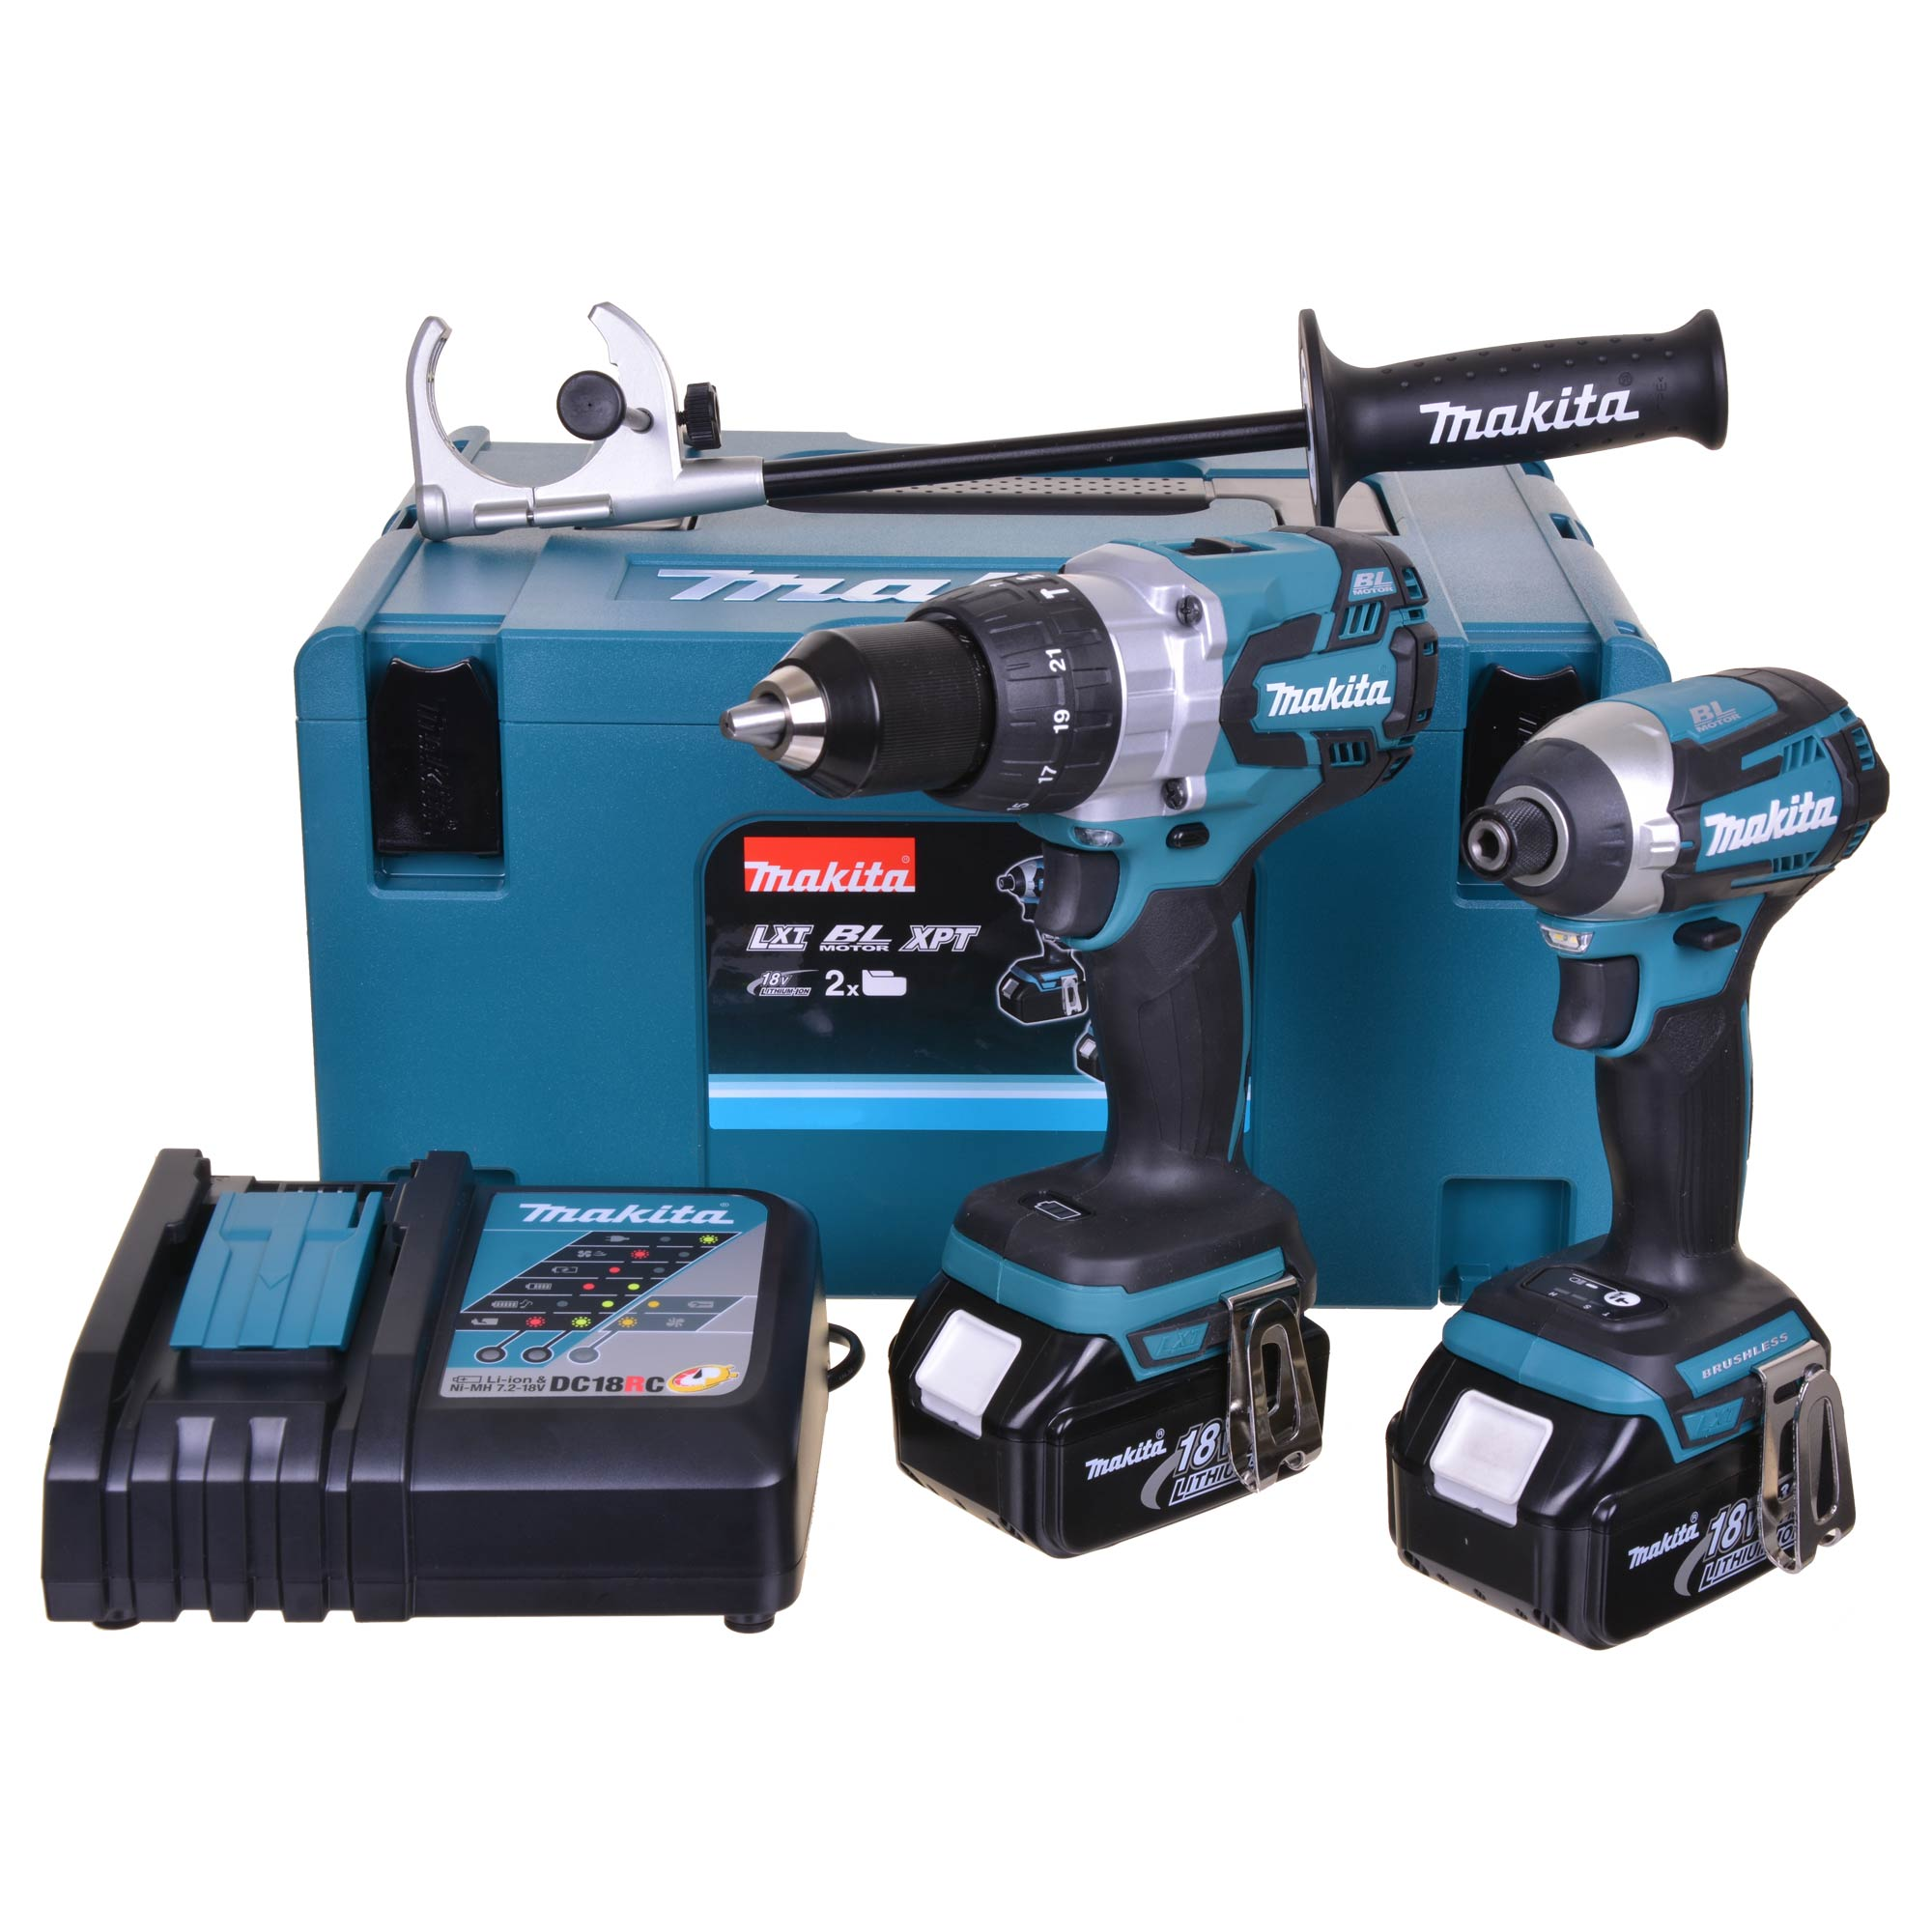 Makita 18V Brushless LXT Heavy-Duty Combi Drill & Impact Driver - 5.0Ah Pack